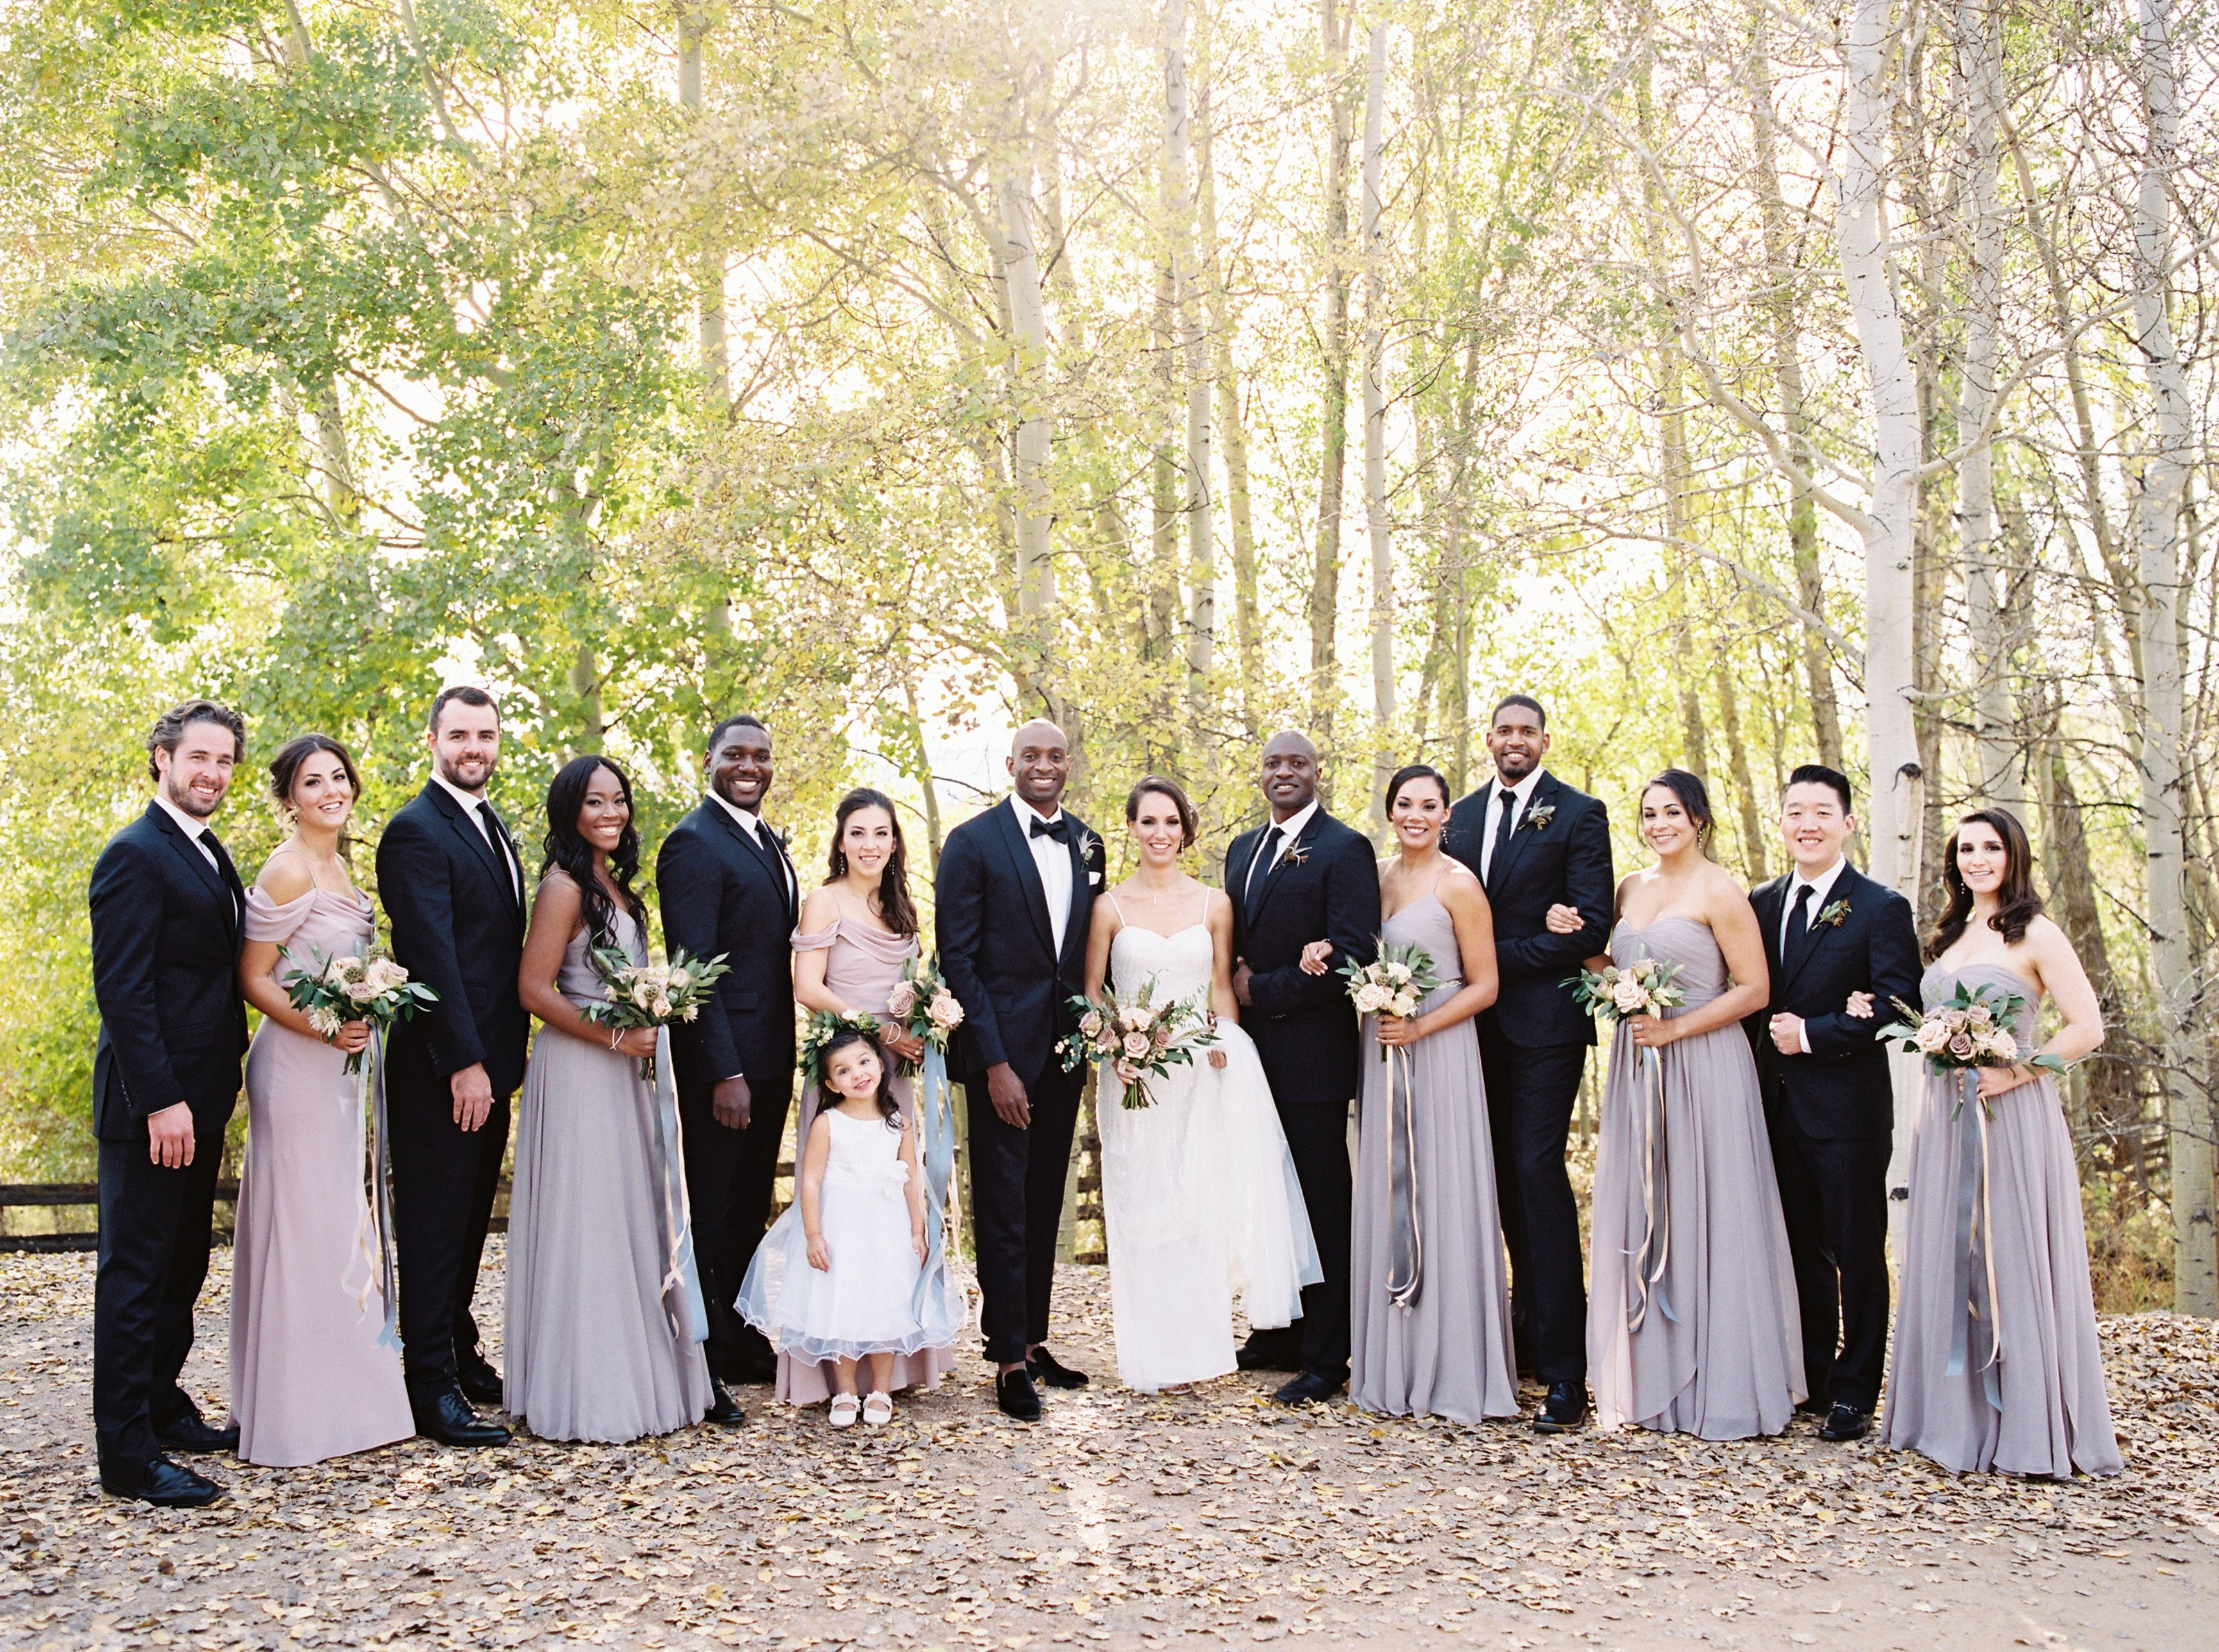 Guests Came from Across the World to this Wyoming Wedding